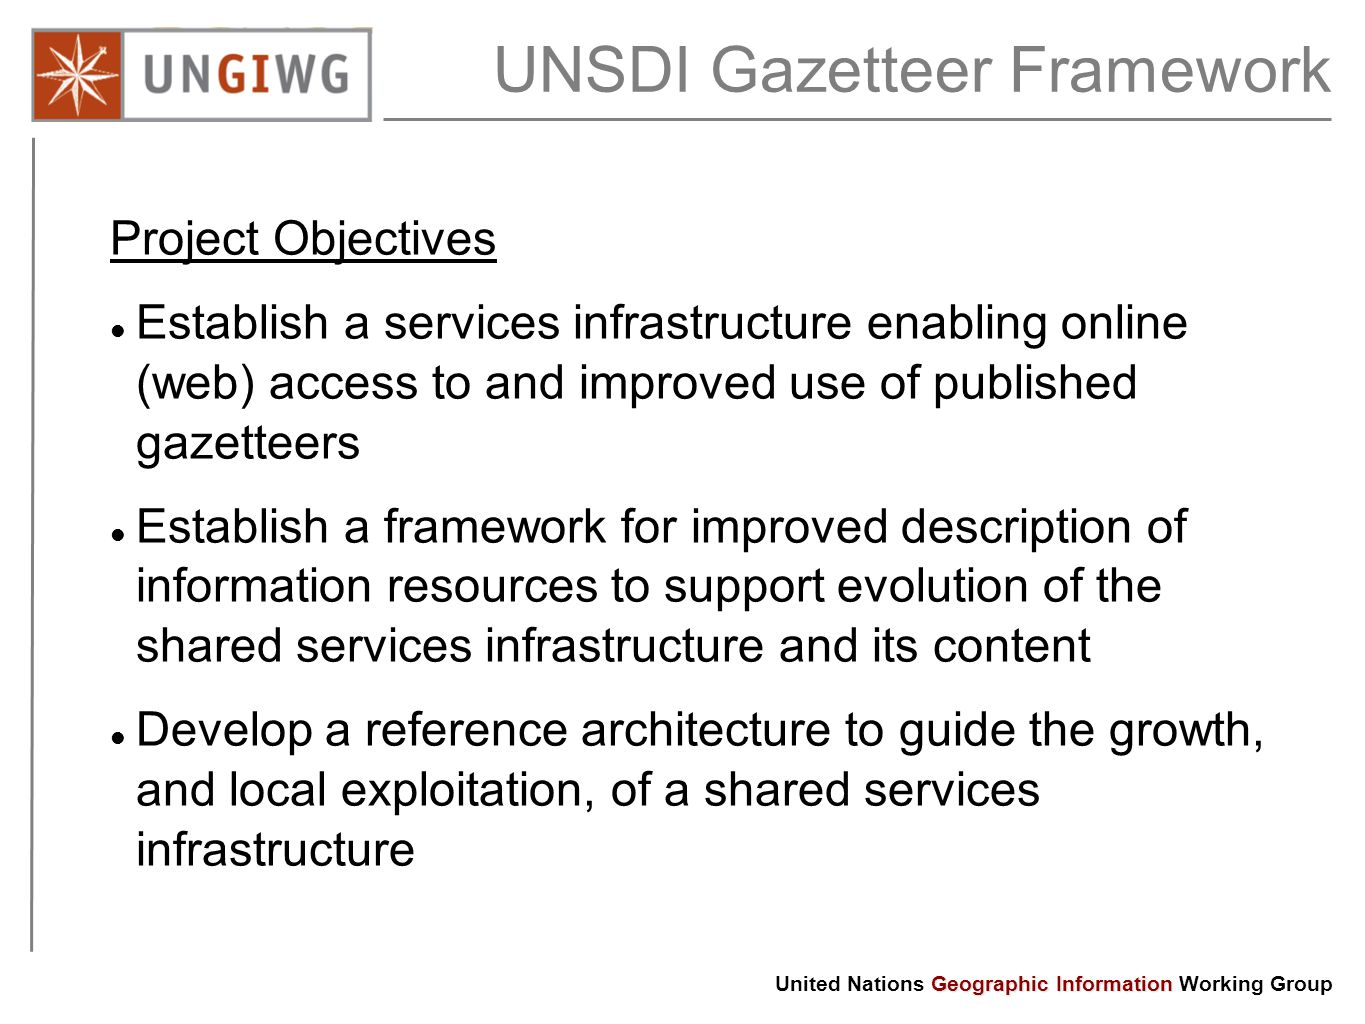 Geographic Information United Nations Geographic Information Working Group UNSDI Gazetteer Framework Project Objectives Establish a services infrastructure enabling online (web) access to and improved use of published gazetteers Establish a framework for improved description of information resources to support evolution of the shared services infrastructure and its content Develop a reference architecture to guide the growth, and local exploitation, of a shared services infrastructure